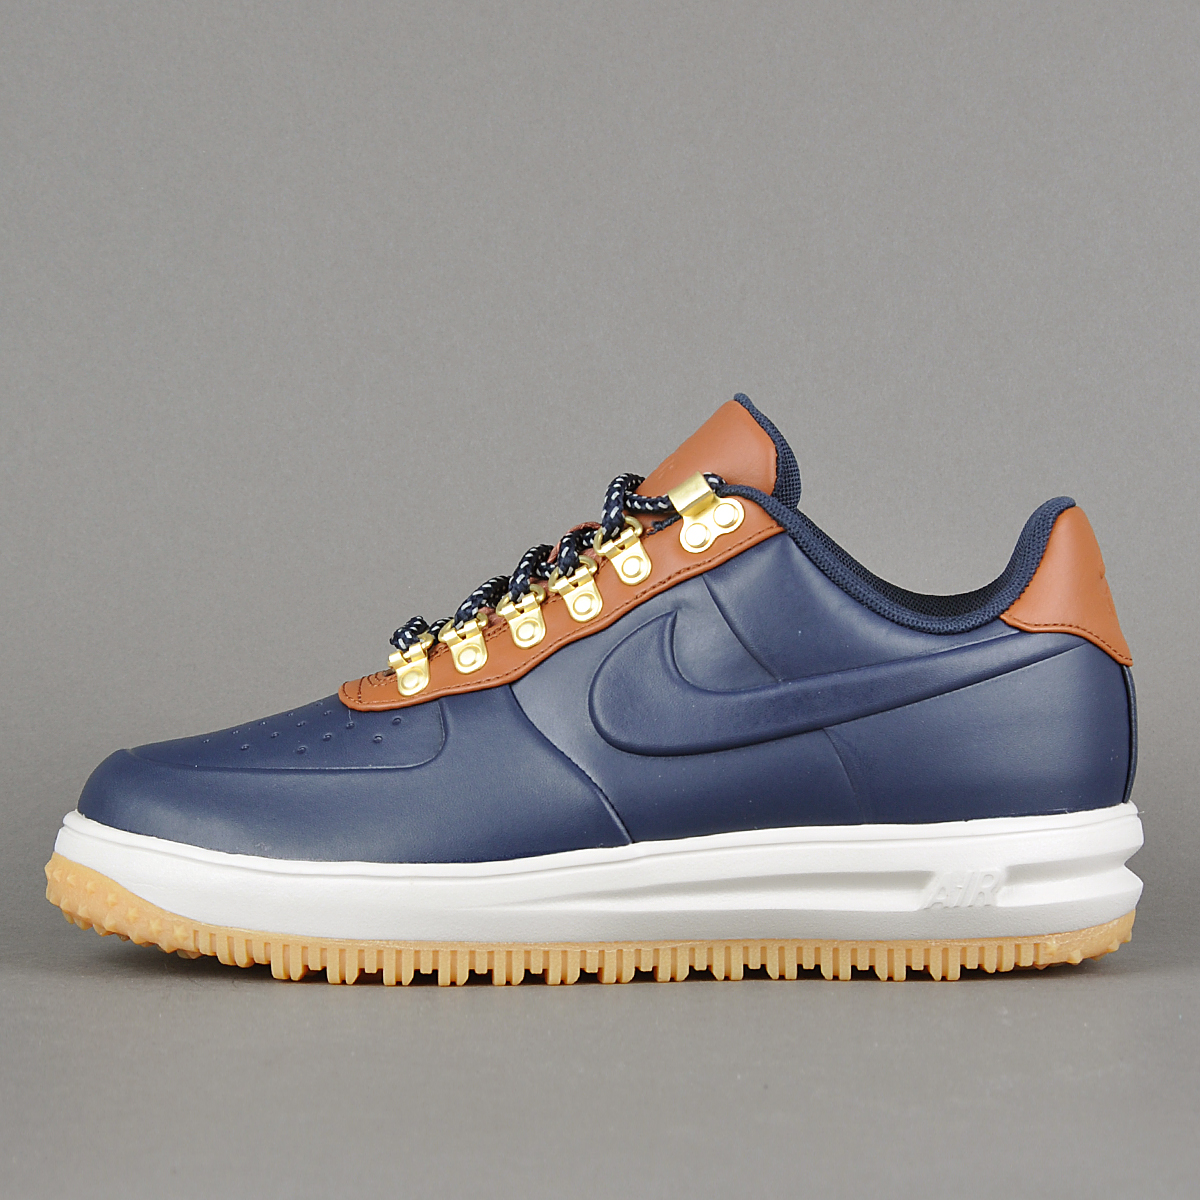 new product 6dbc2 7bc72 ... mens casual shoes sneakers bfc95 6eb58  new style nike lunar force 1  duckboot low obsidian saddle brown. 1 11ea9 35153